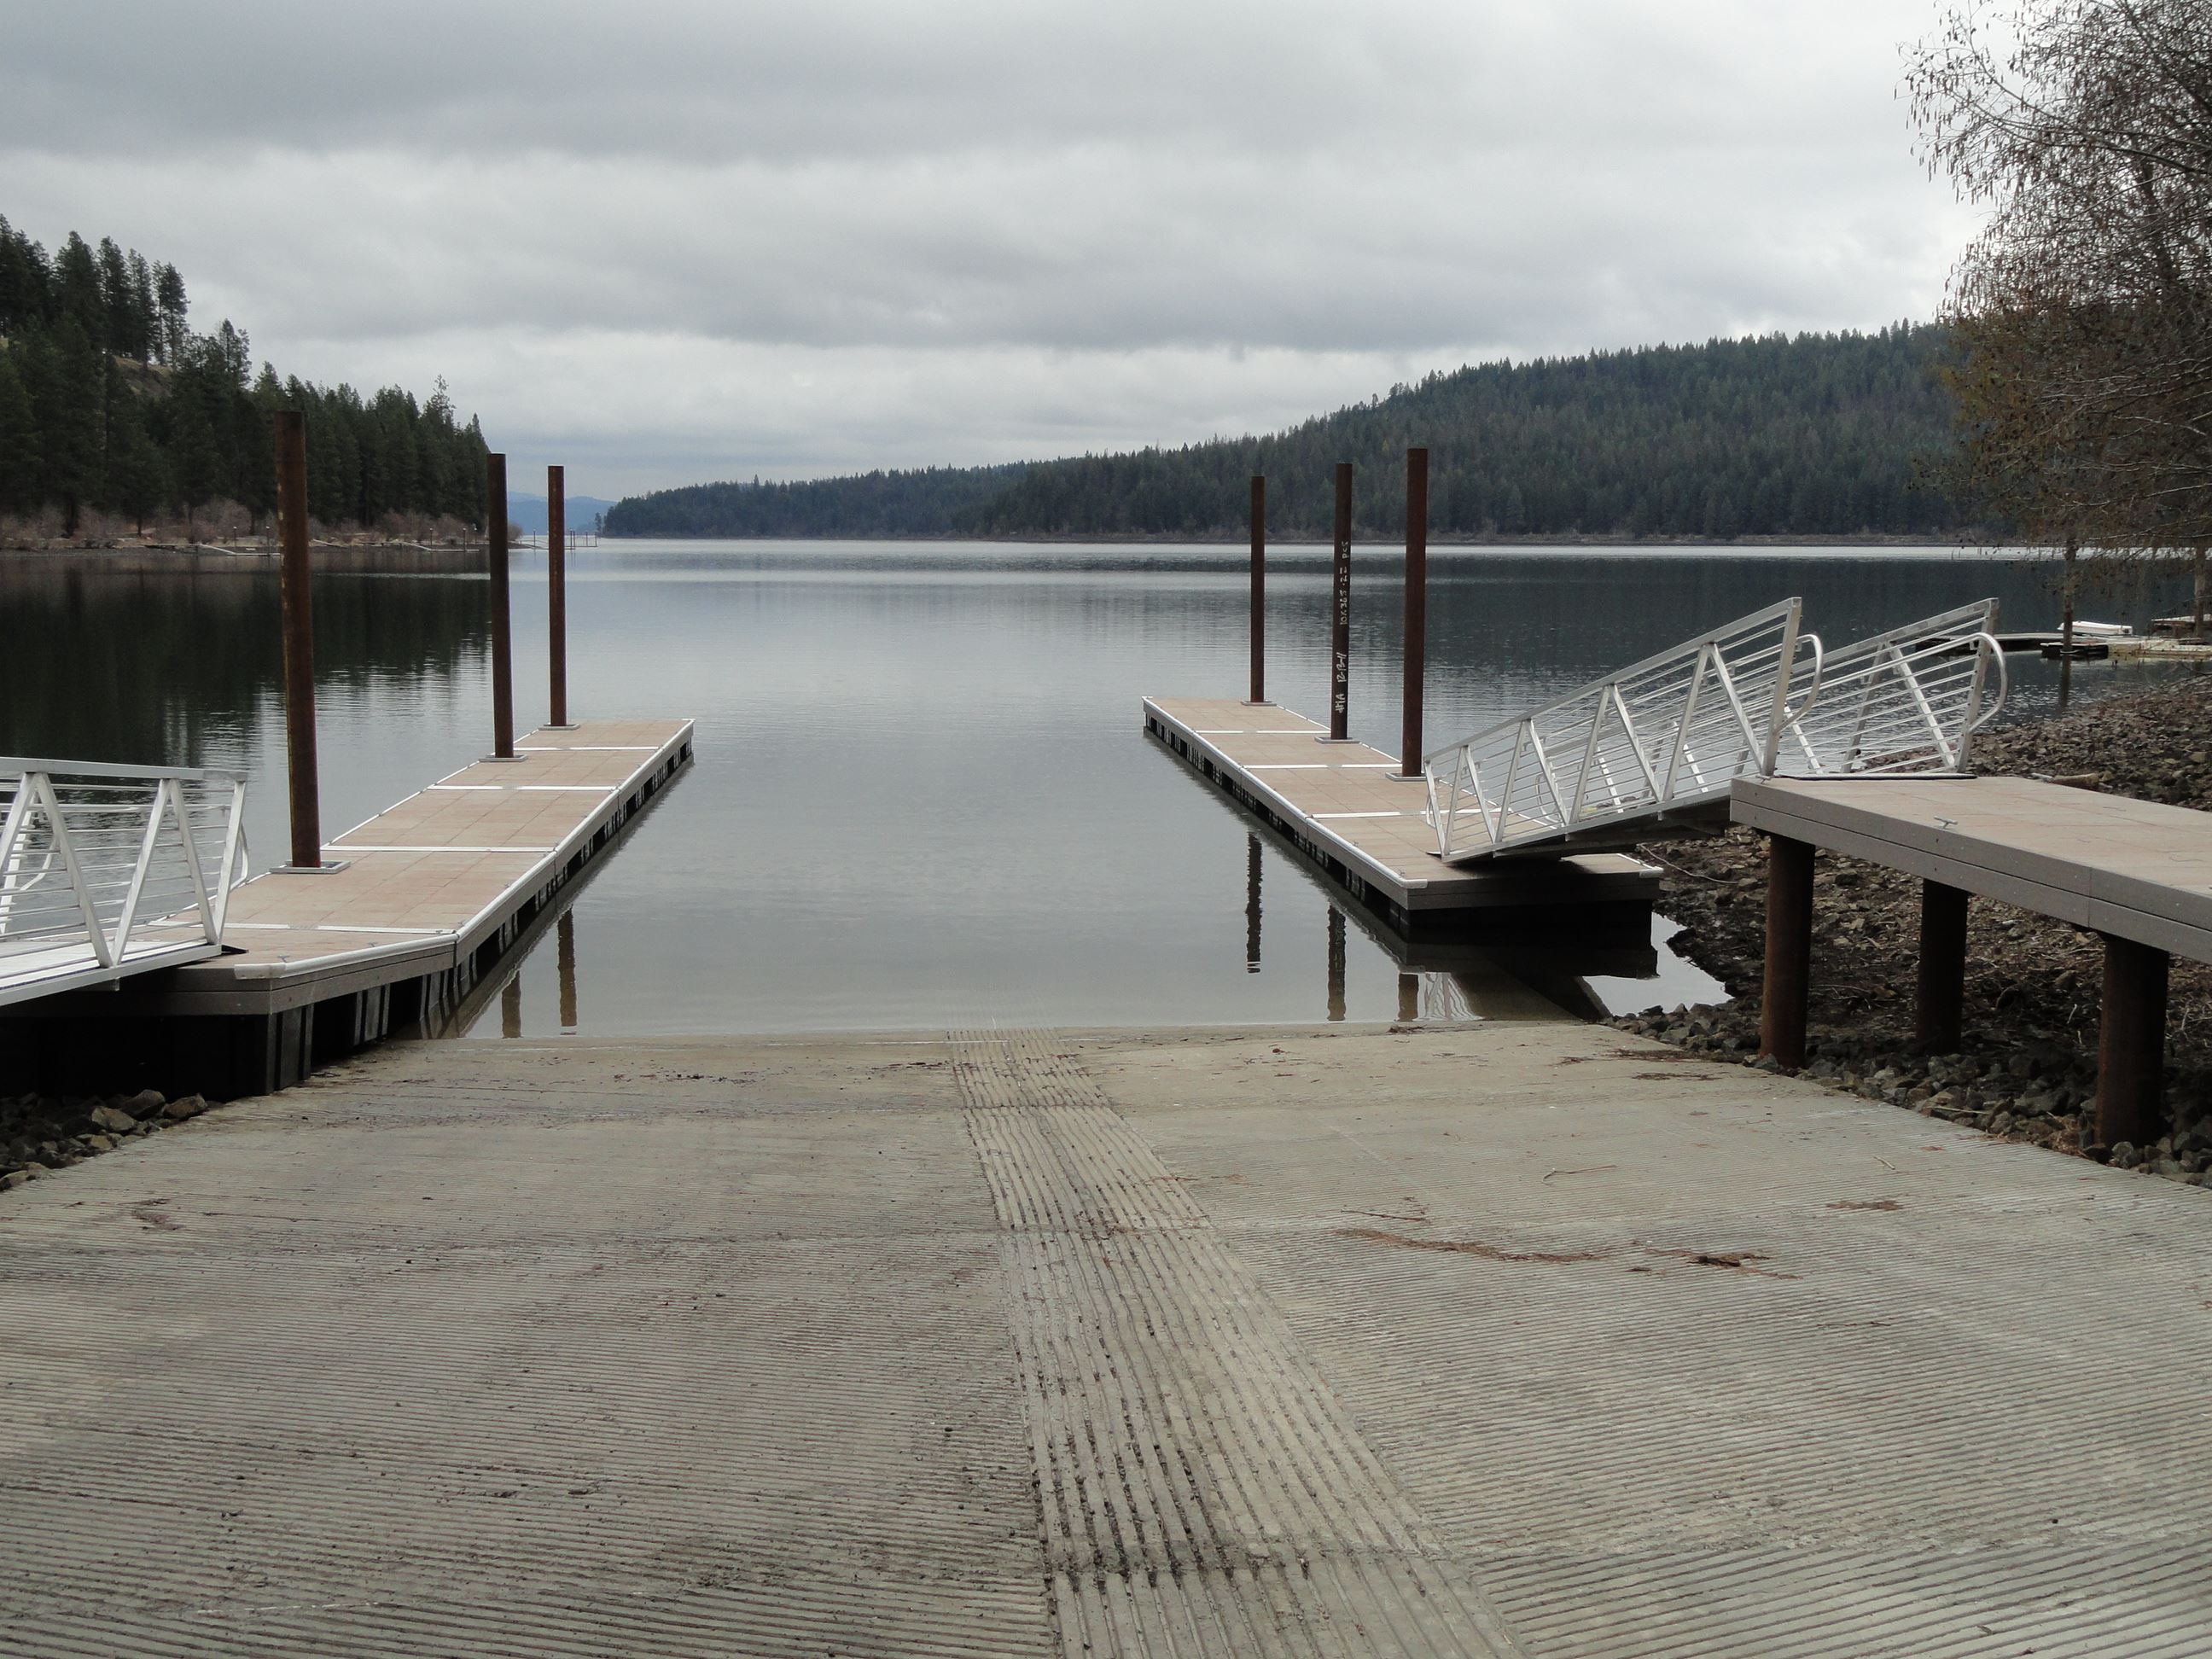 Sunup Bay boat launch and docks